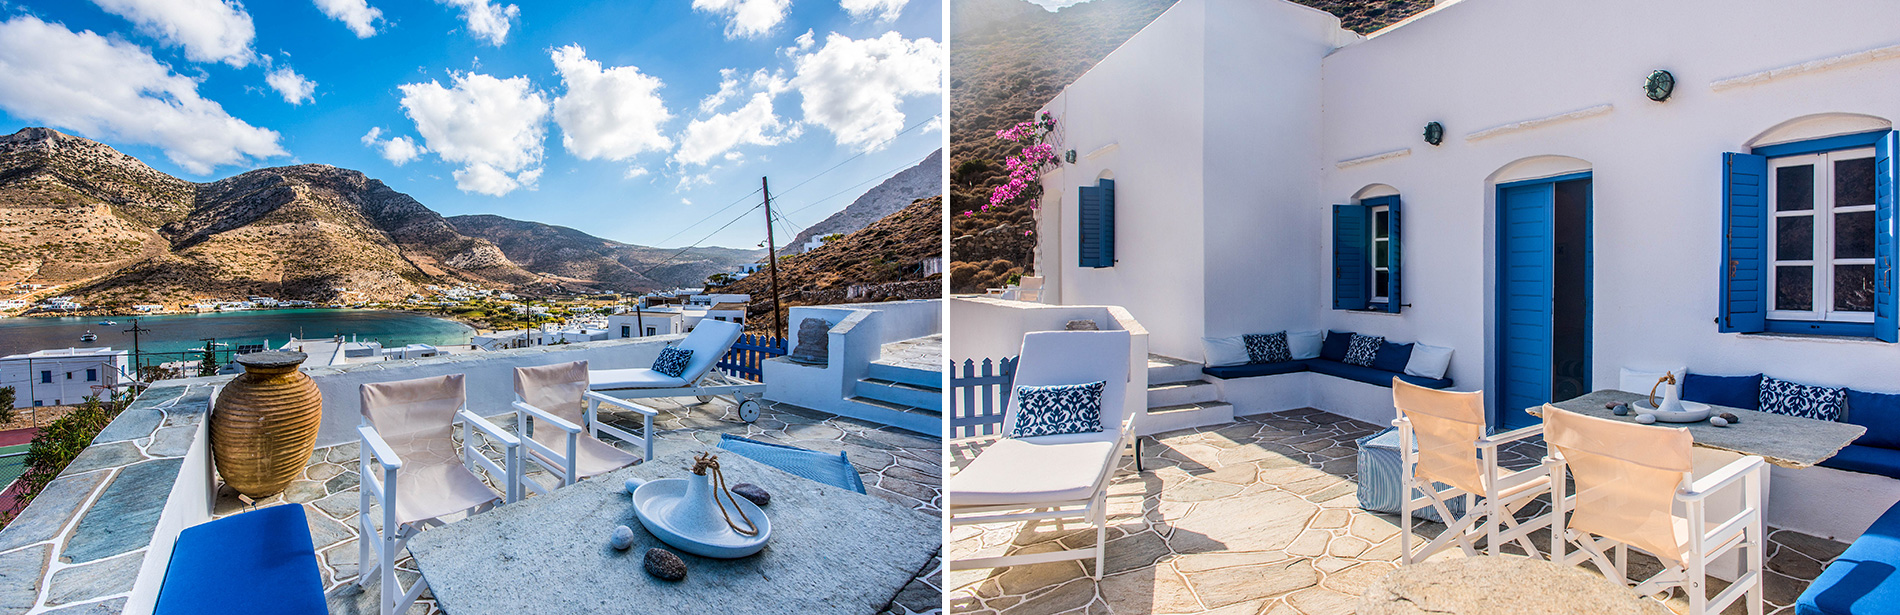 PROLAT GOES TO SIFNOS! Image